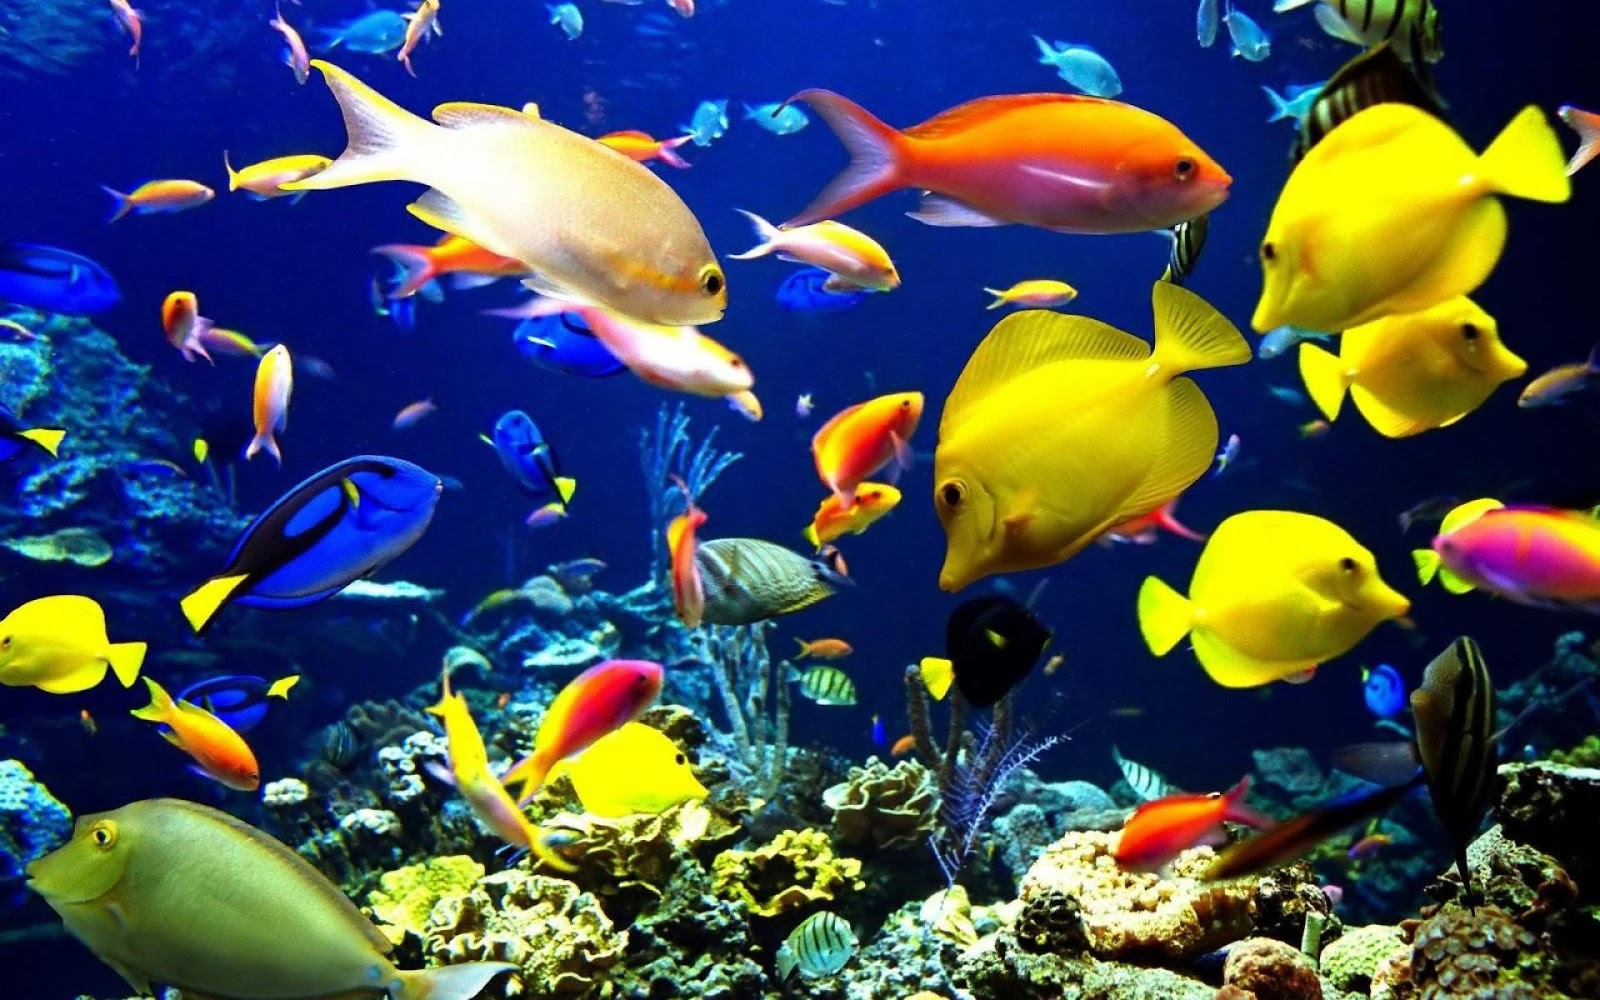 aquarium wallpaper hd - photo #16